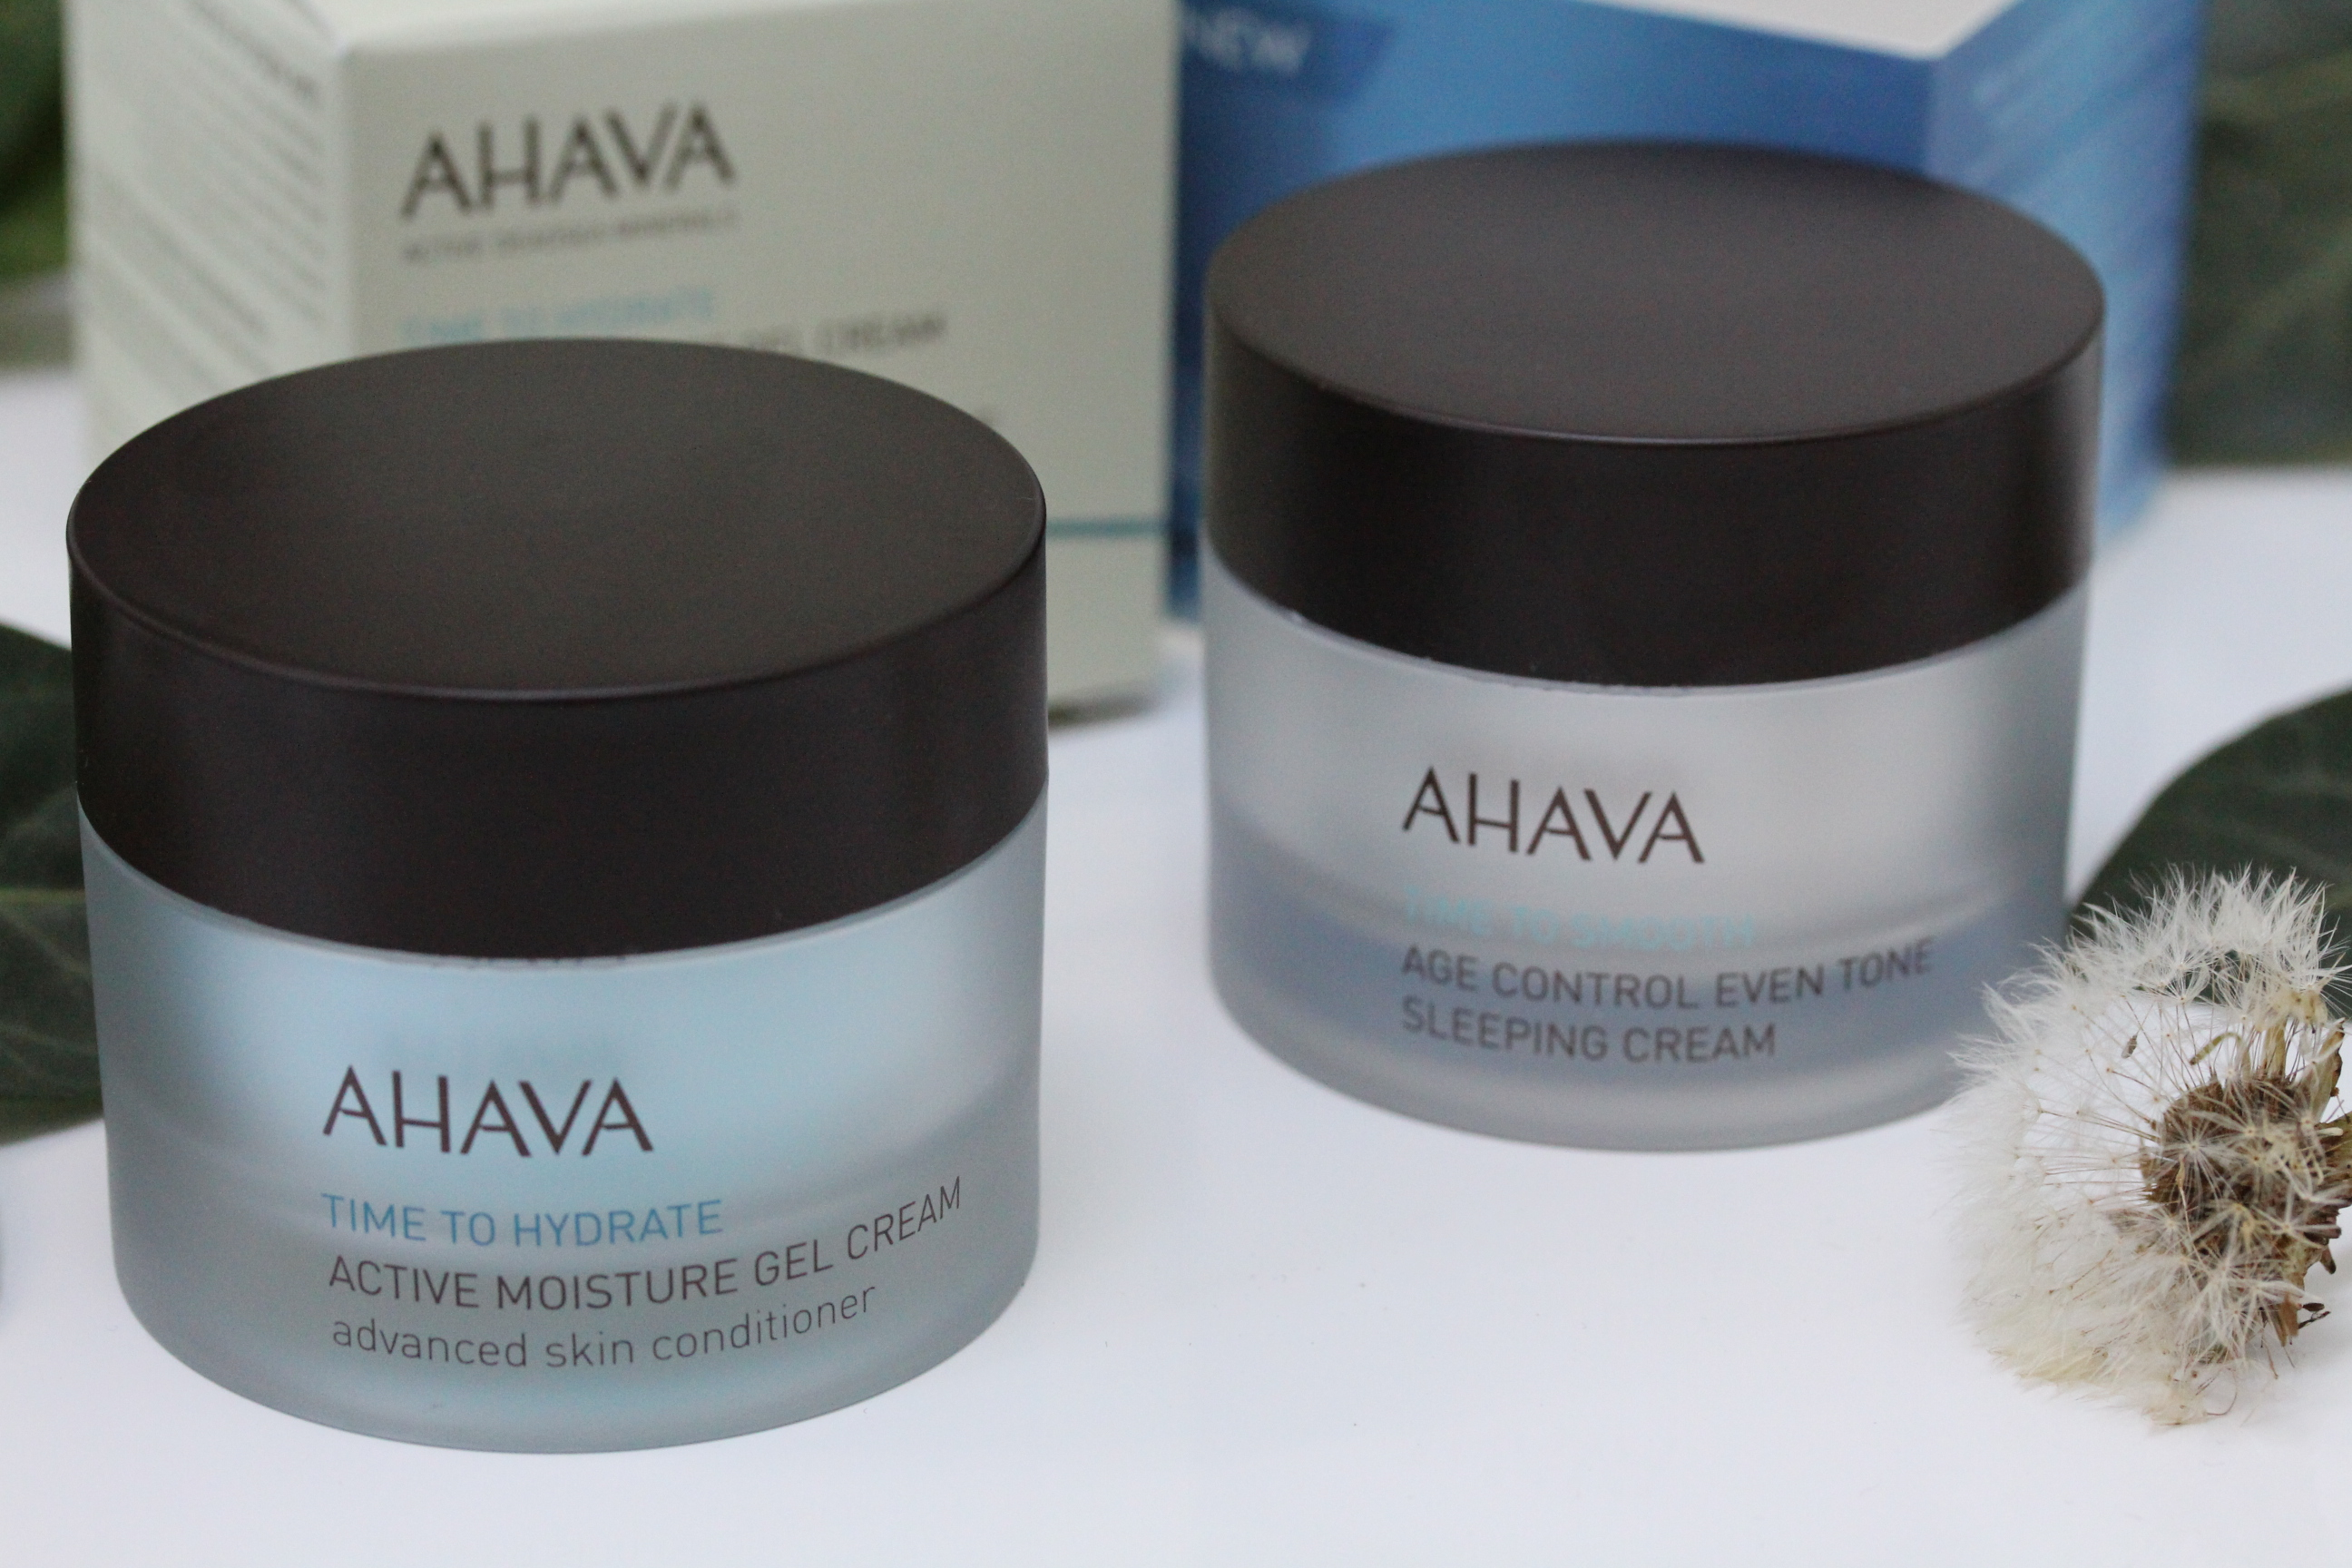 Pflege von AHAVA: Time to hydrate & Age Control